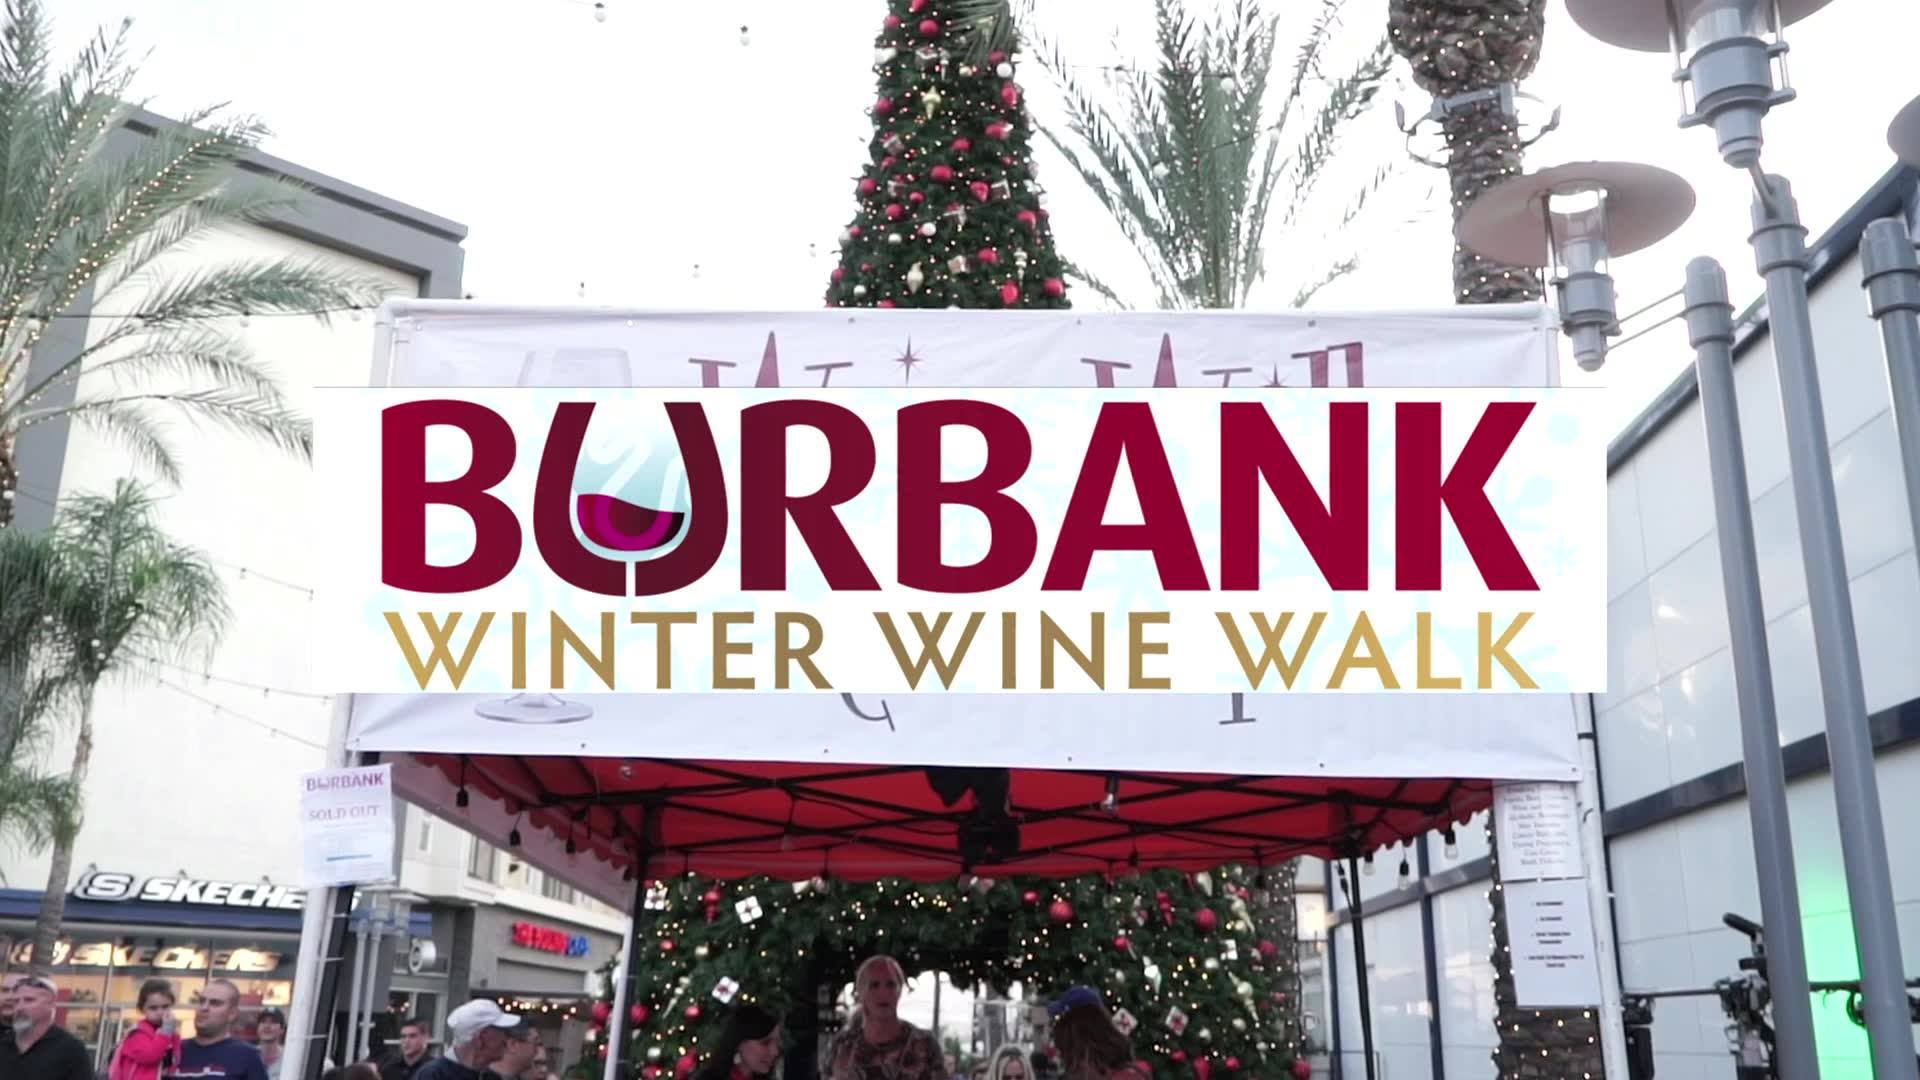 Burbank Winter Wine Walk